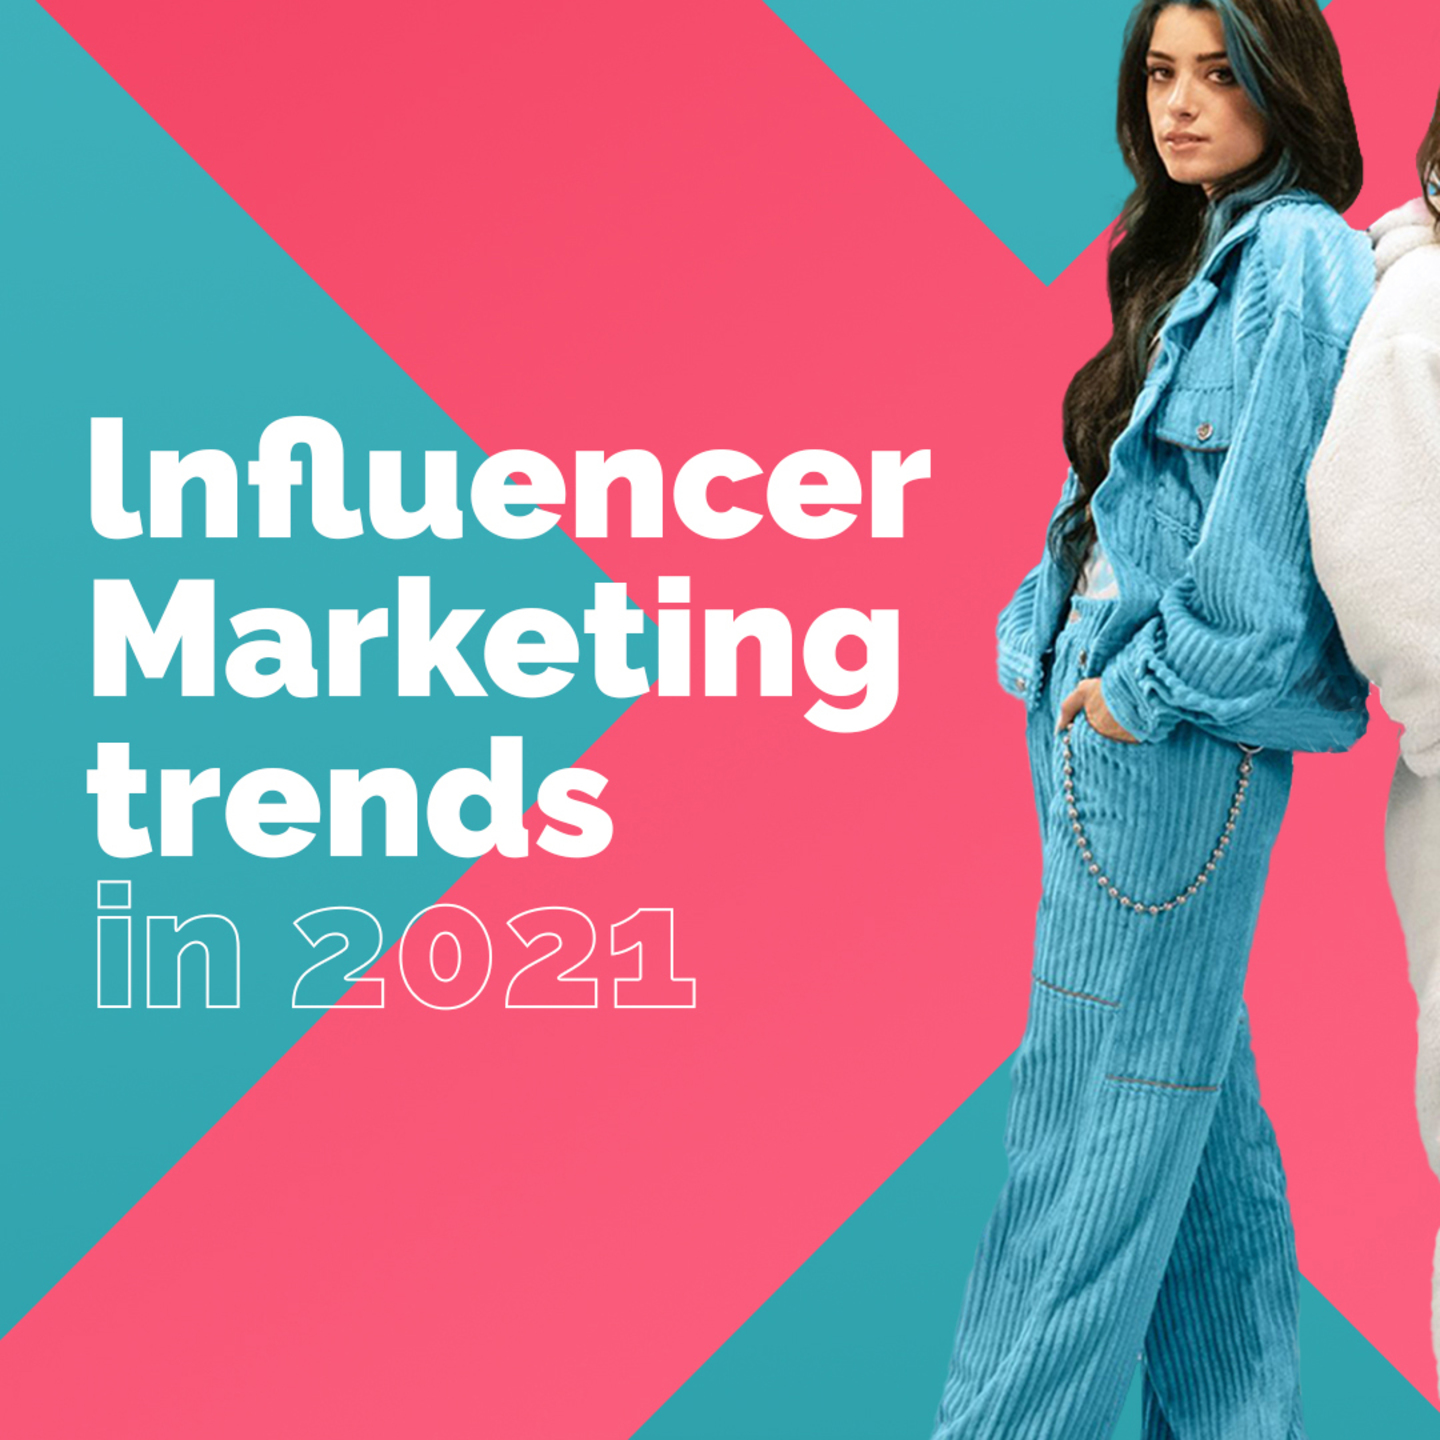 Influencer trends 2021 - How the pandemic change the industry.